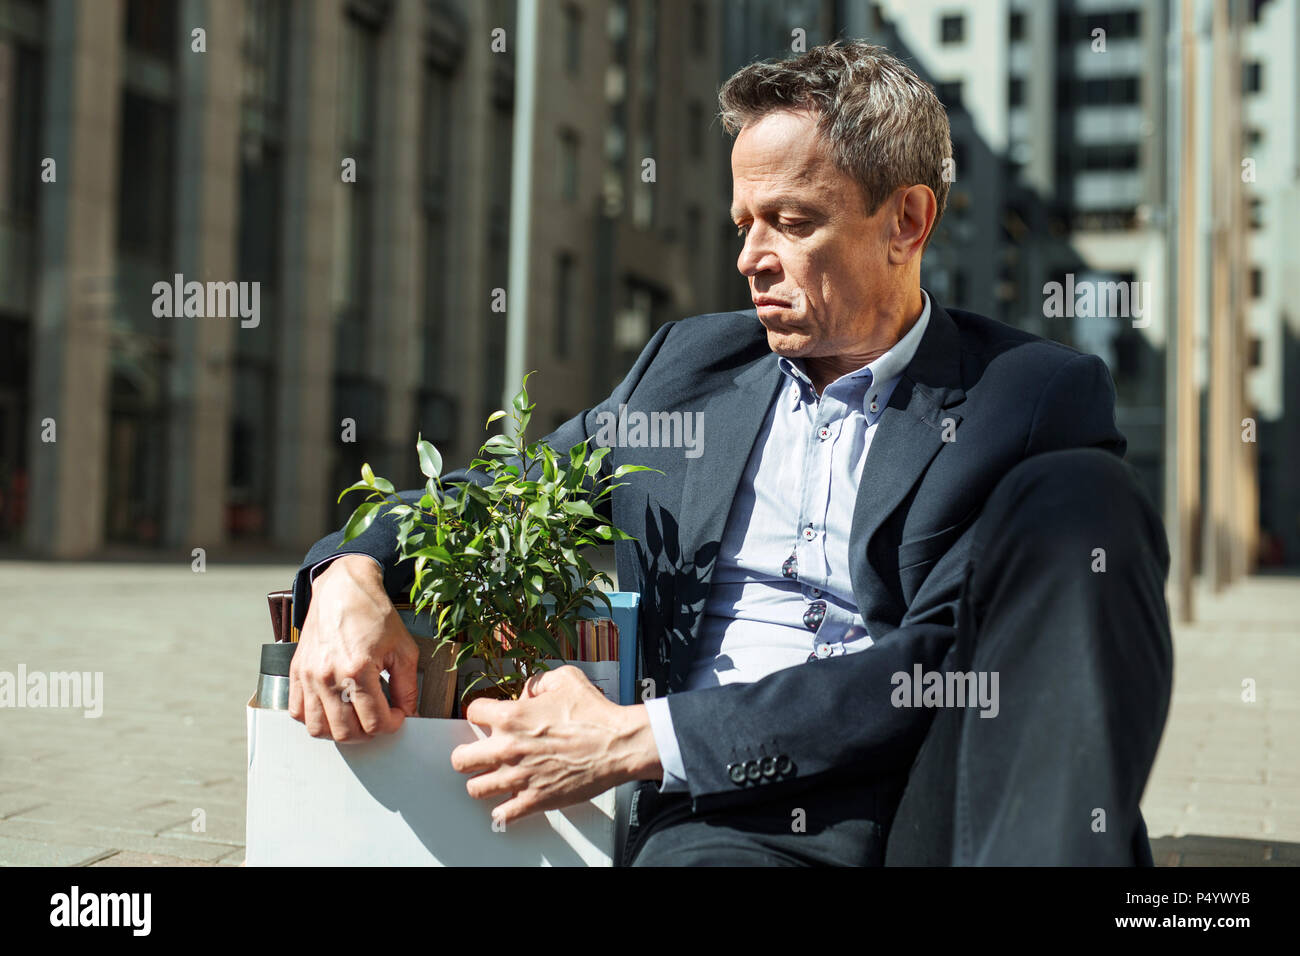 Grief stricken man feeling bad after being fired - Stock Image